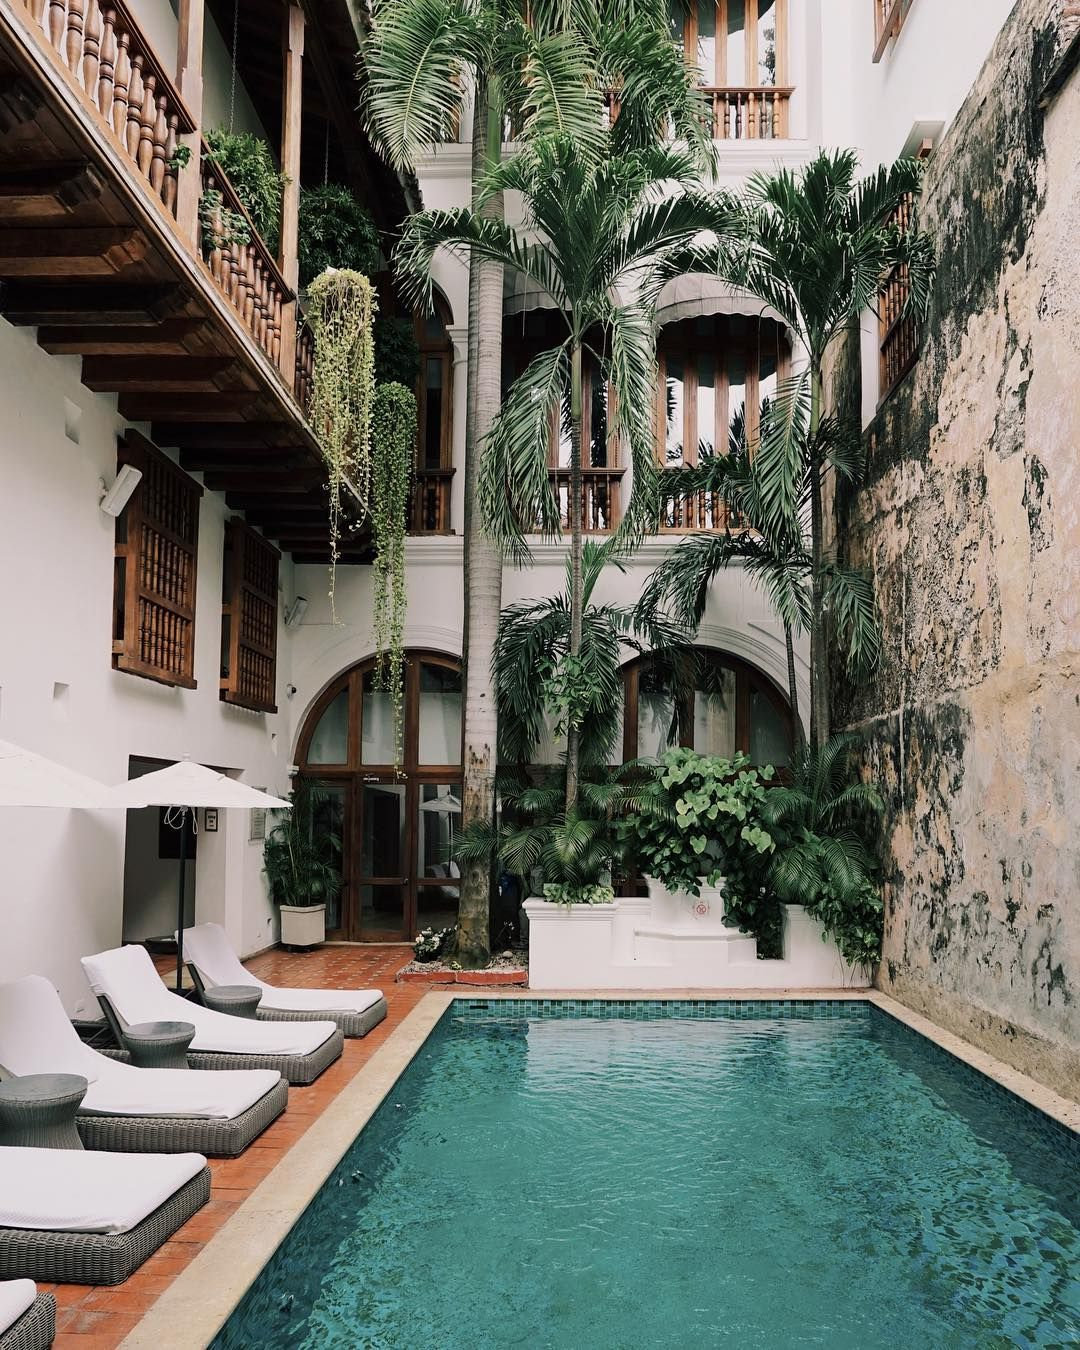 Trip To Colombia, Hotel Inspiration